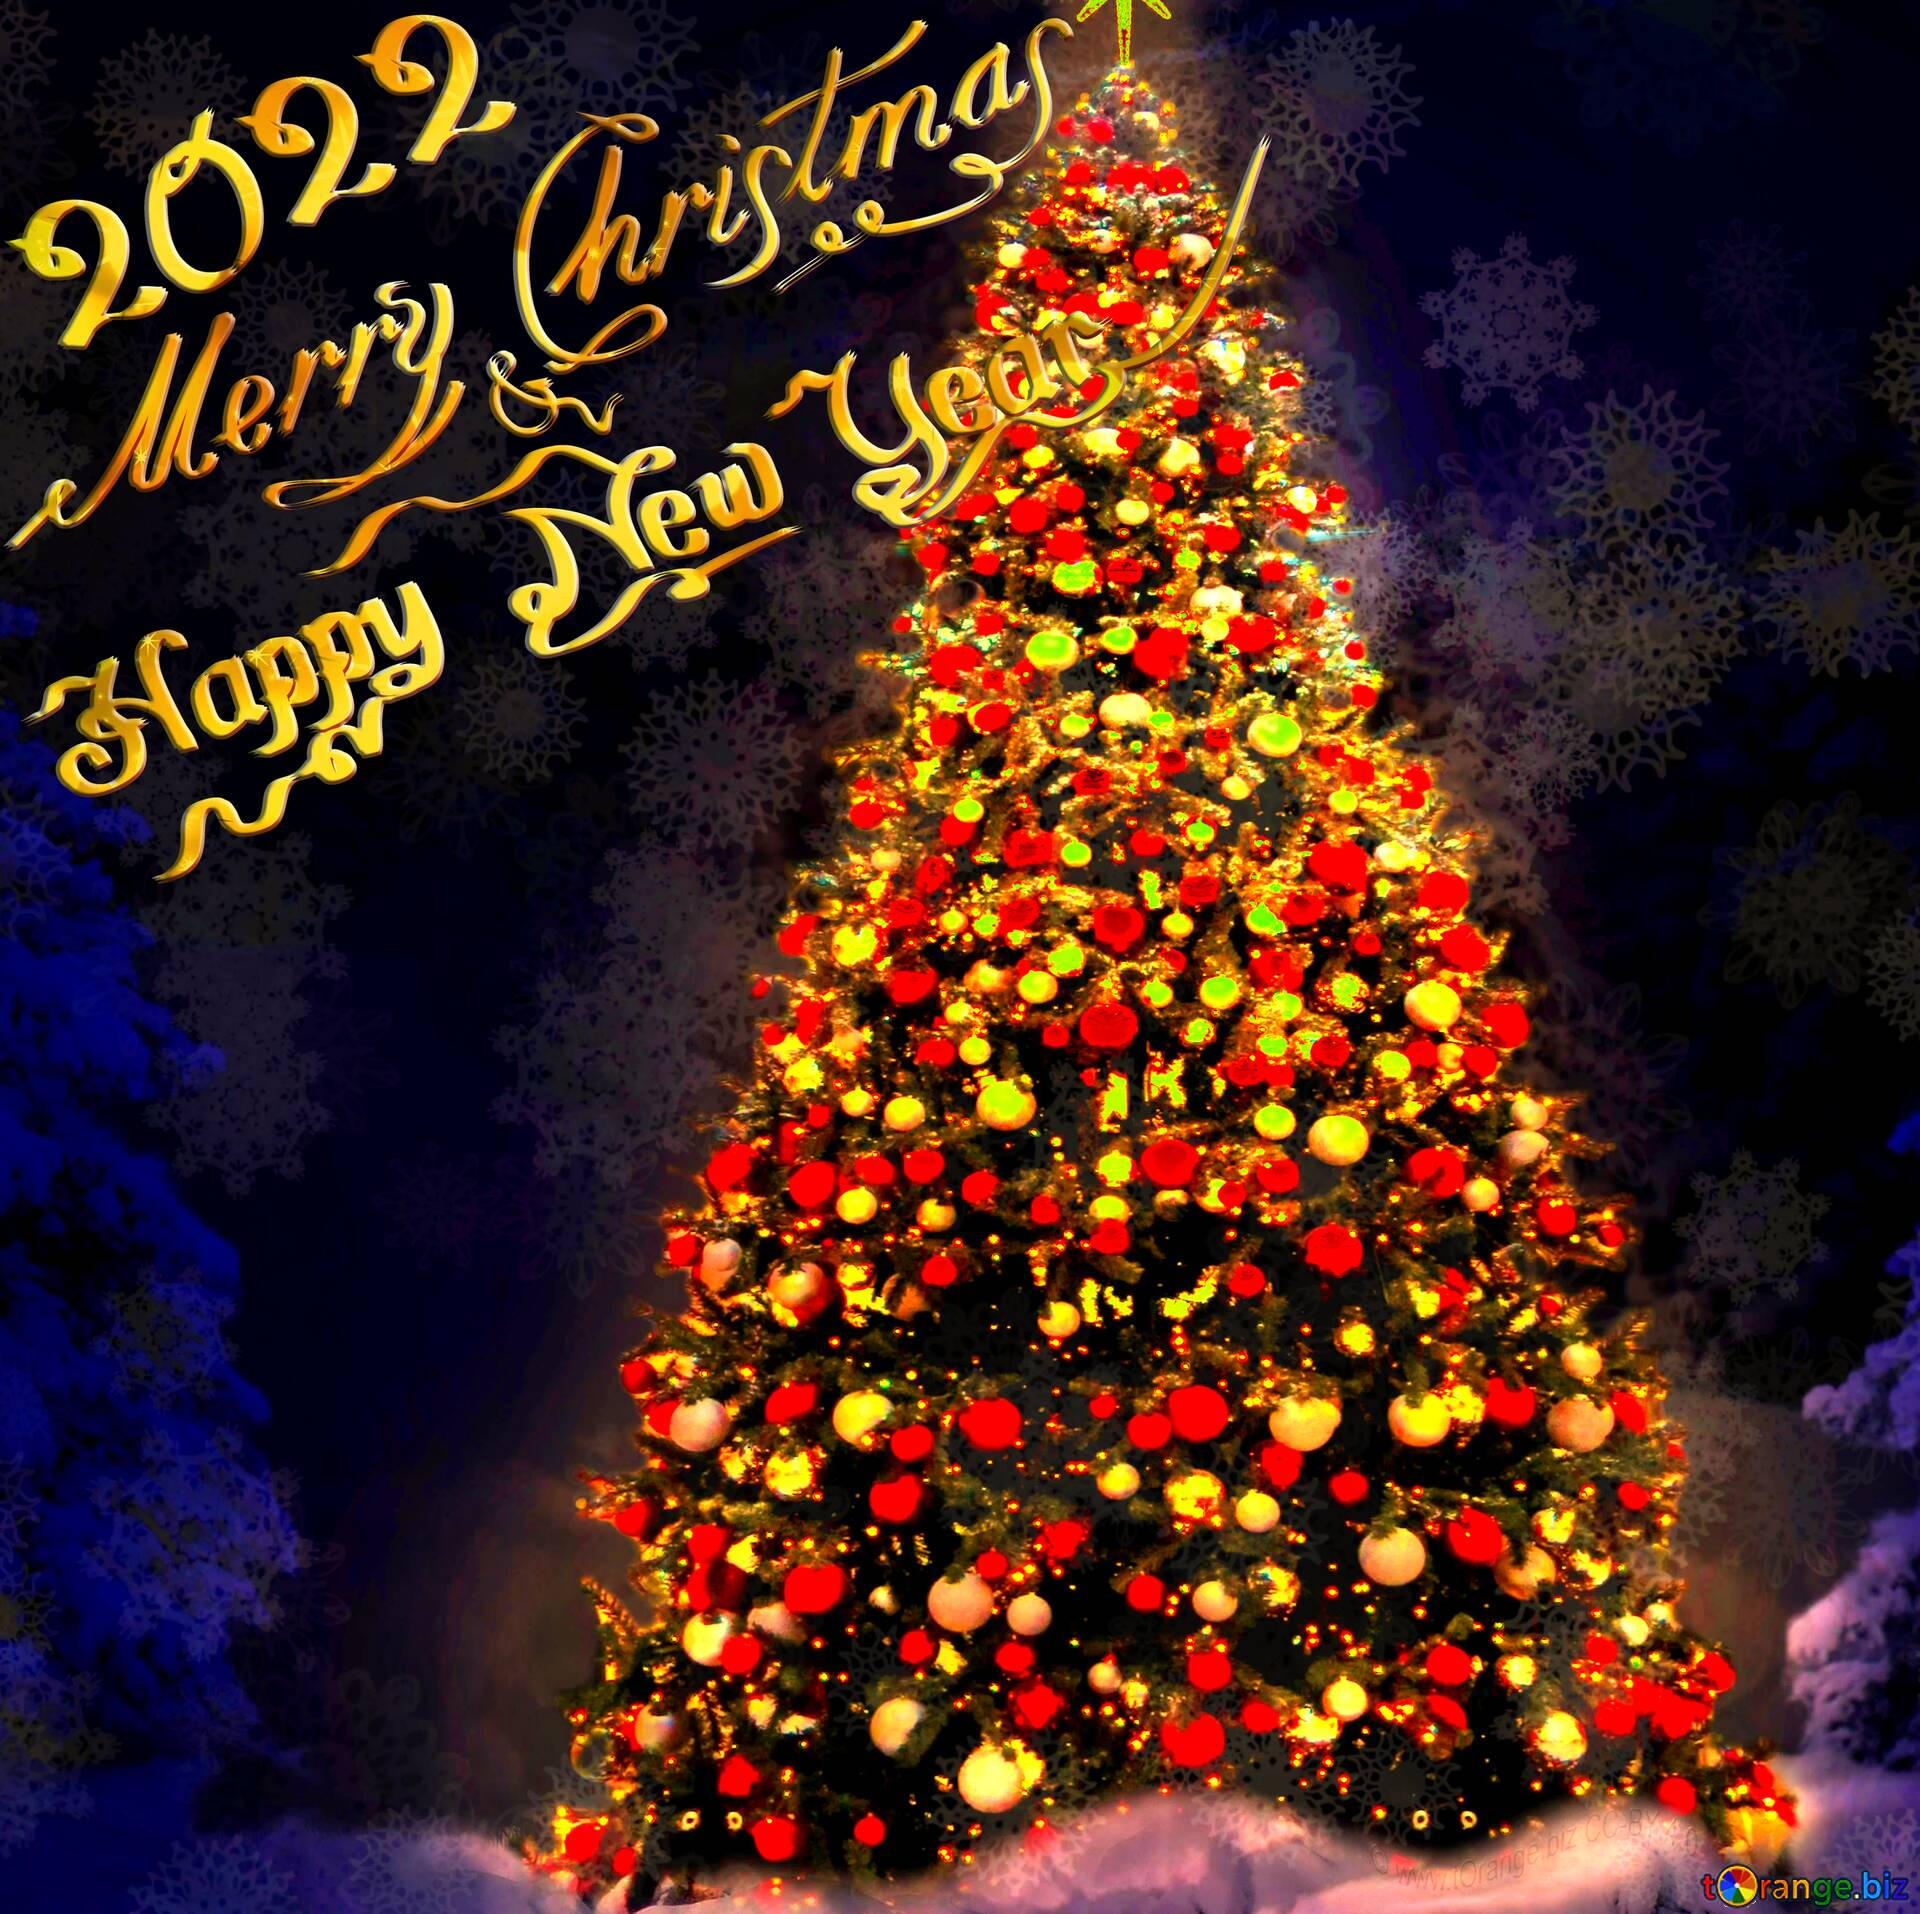 download free picture 2021 merry christmas on cc by license free image stock torange biz fx 141114 download free picture 2021 merry christmas on cc by license free image stock torange biz fx 141114